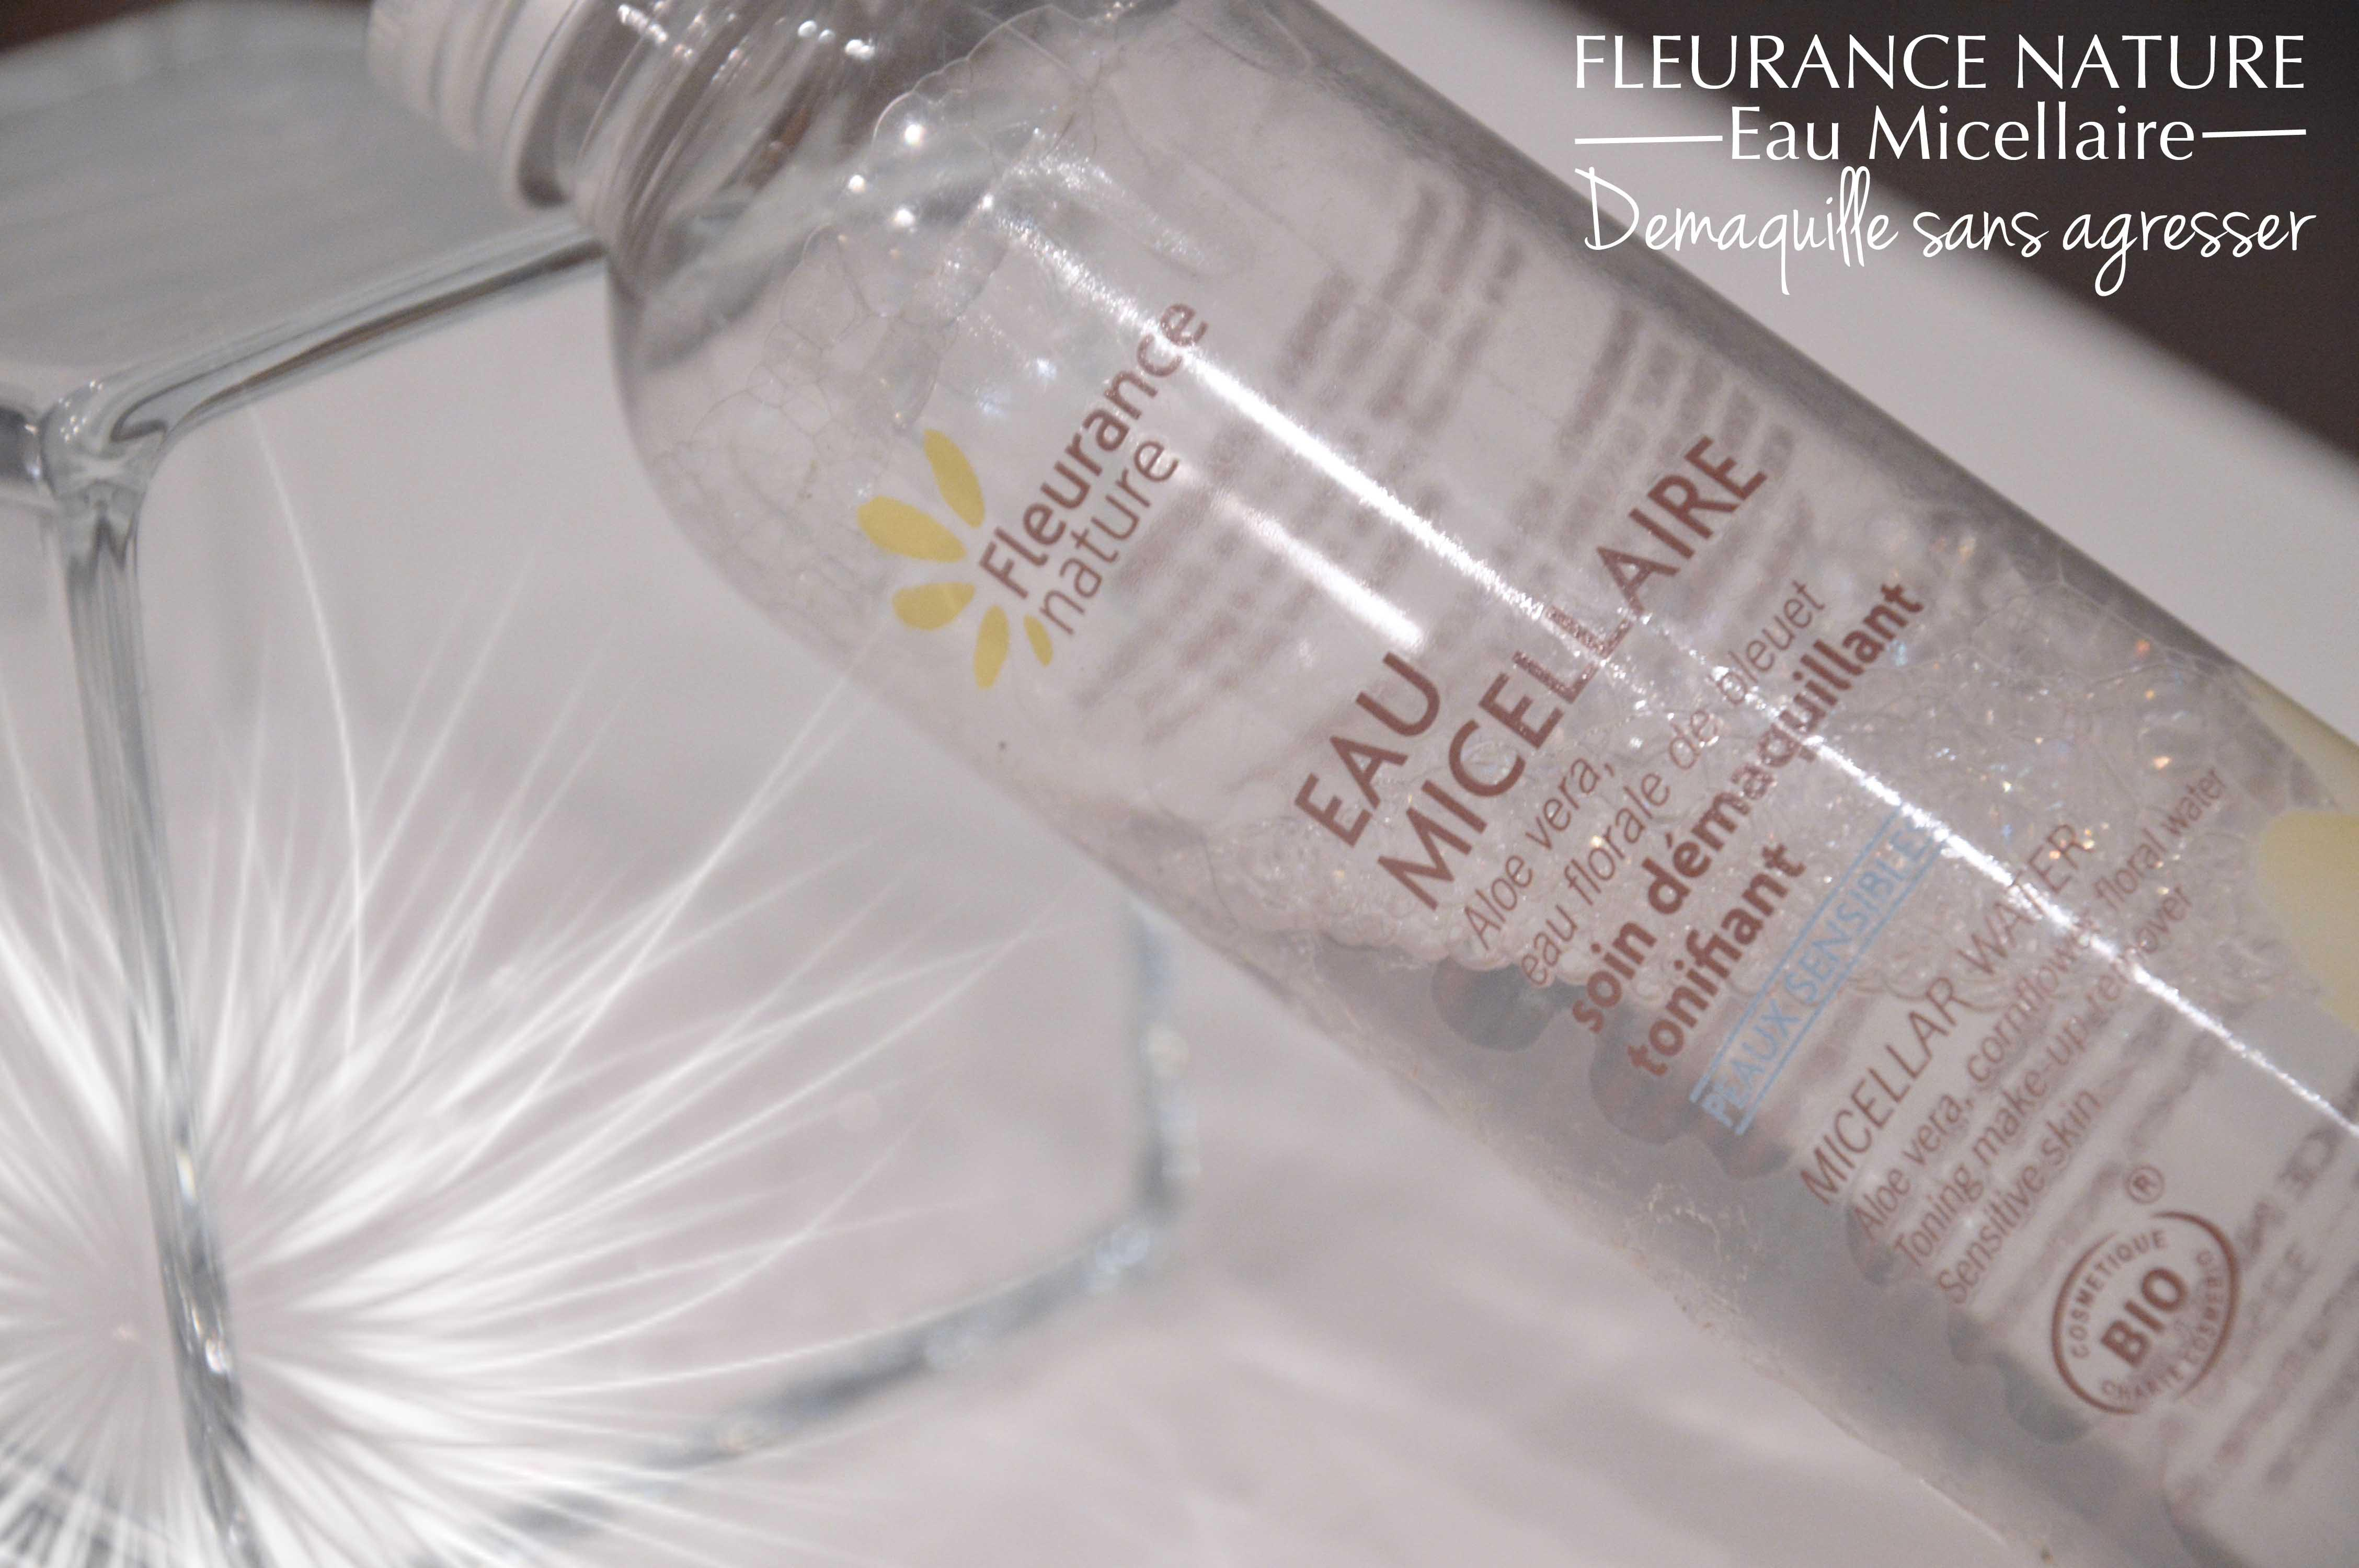 ALITTLEB_BLOG_BEAUTE_SOIN_COCOONING_FLEURANCE_NATURE_EAU_MICELLAIRE